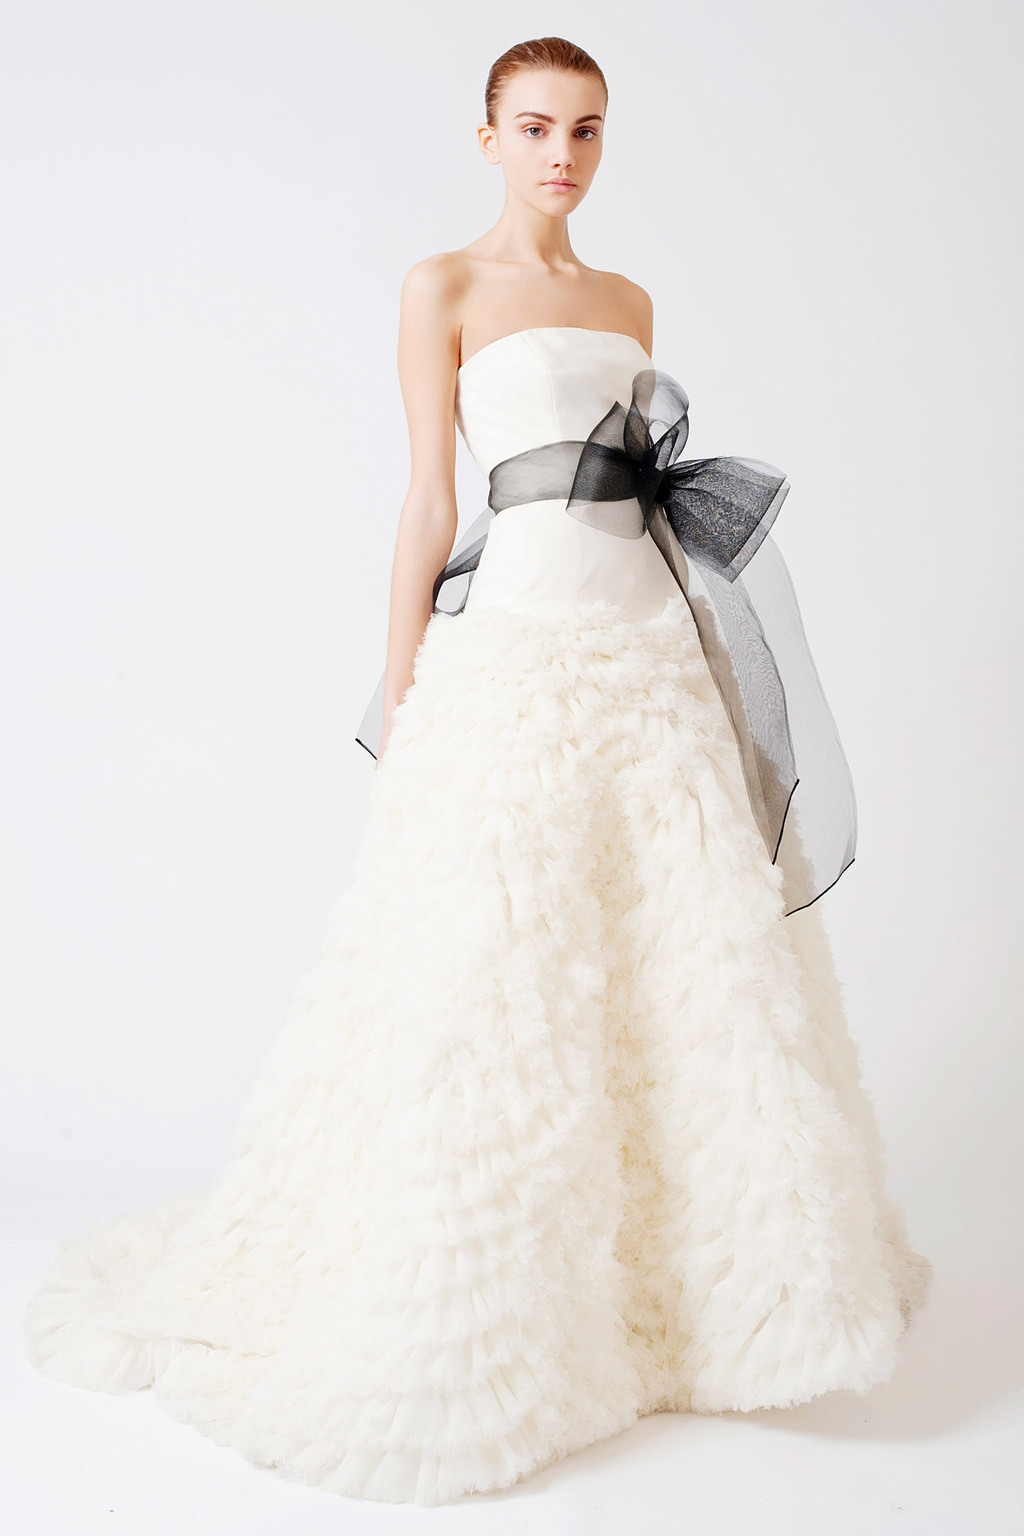 Eleanor-strapless-a-line-ivory-wedding-dress-feathered-tulle-black-sash.full